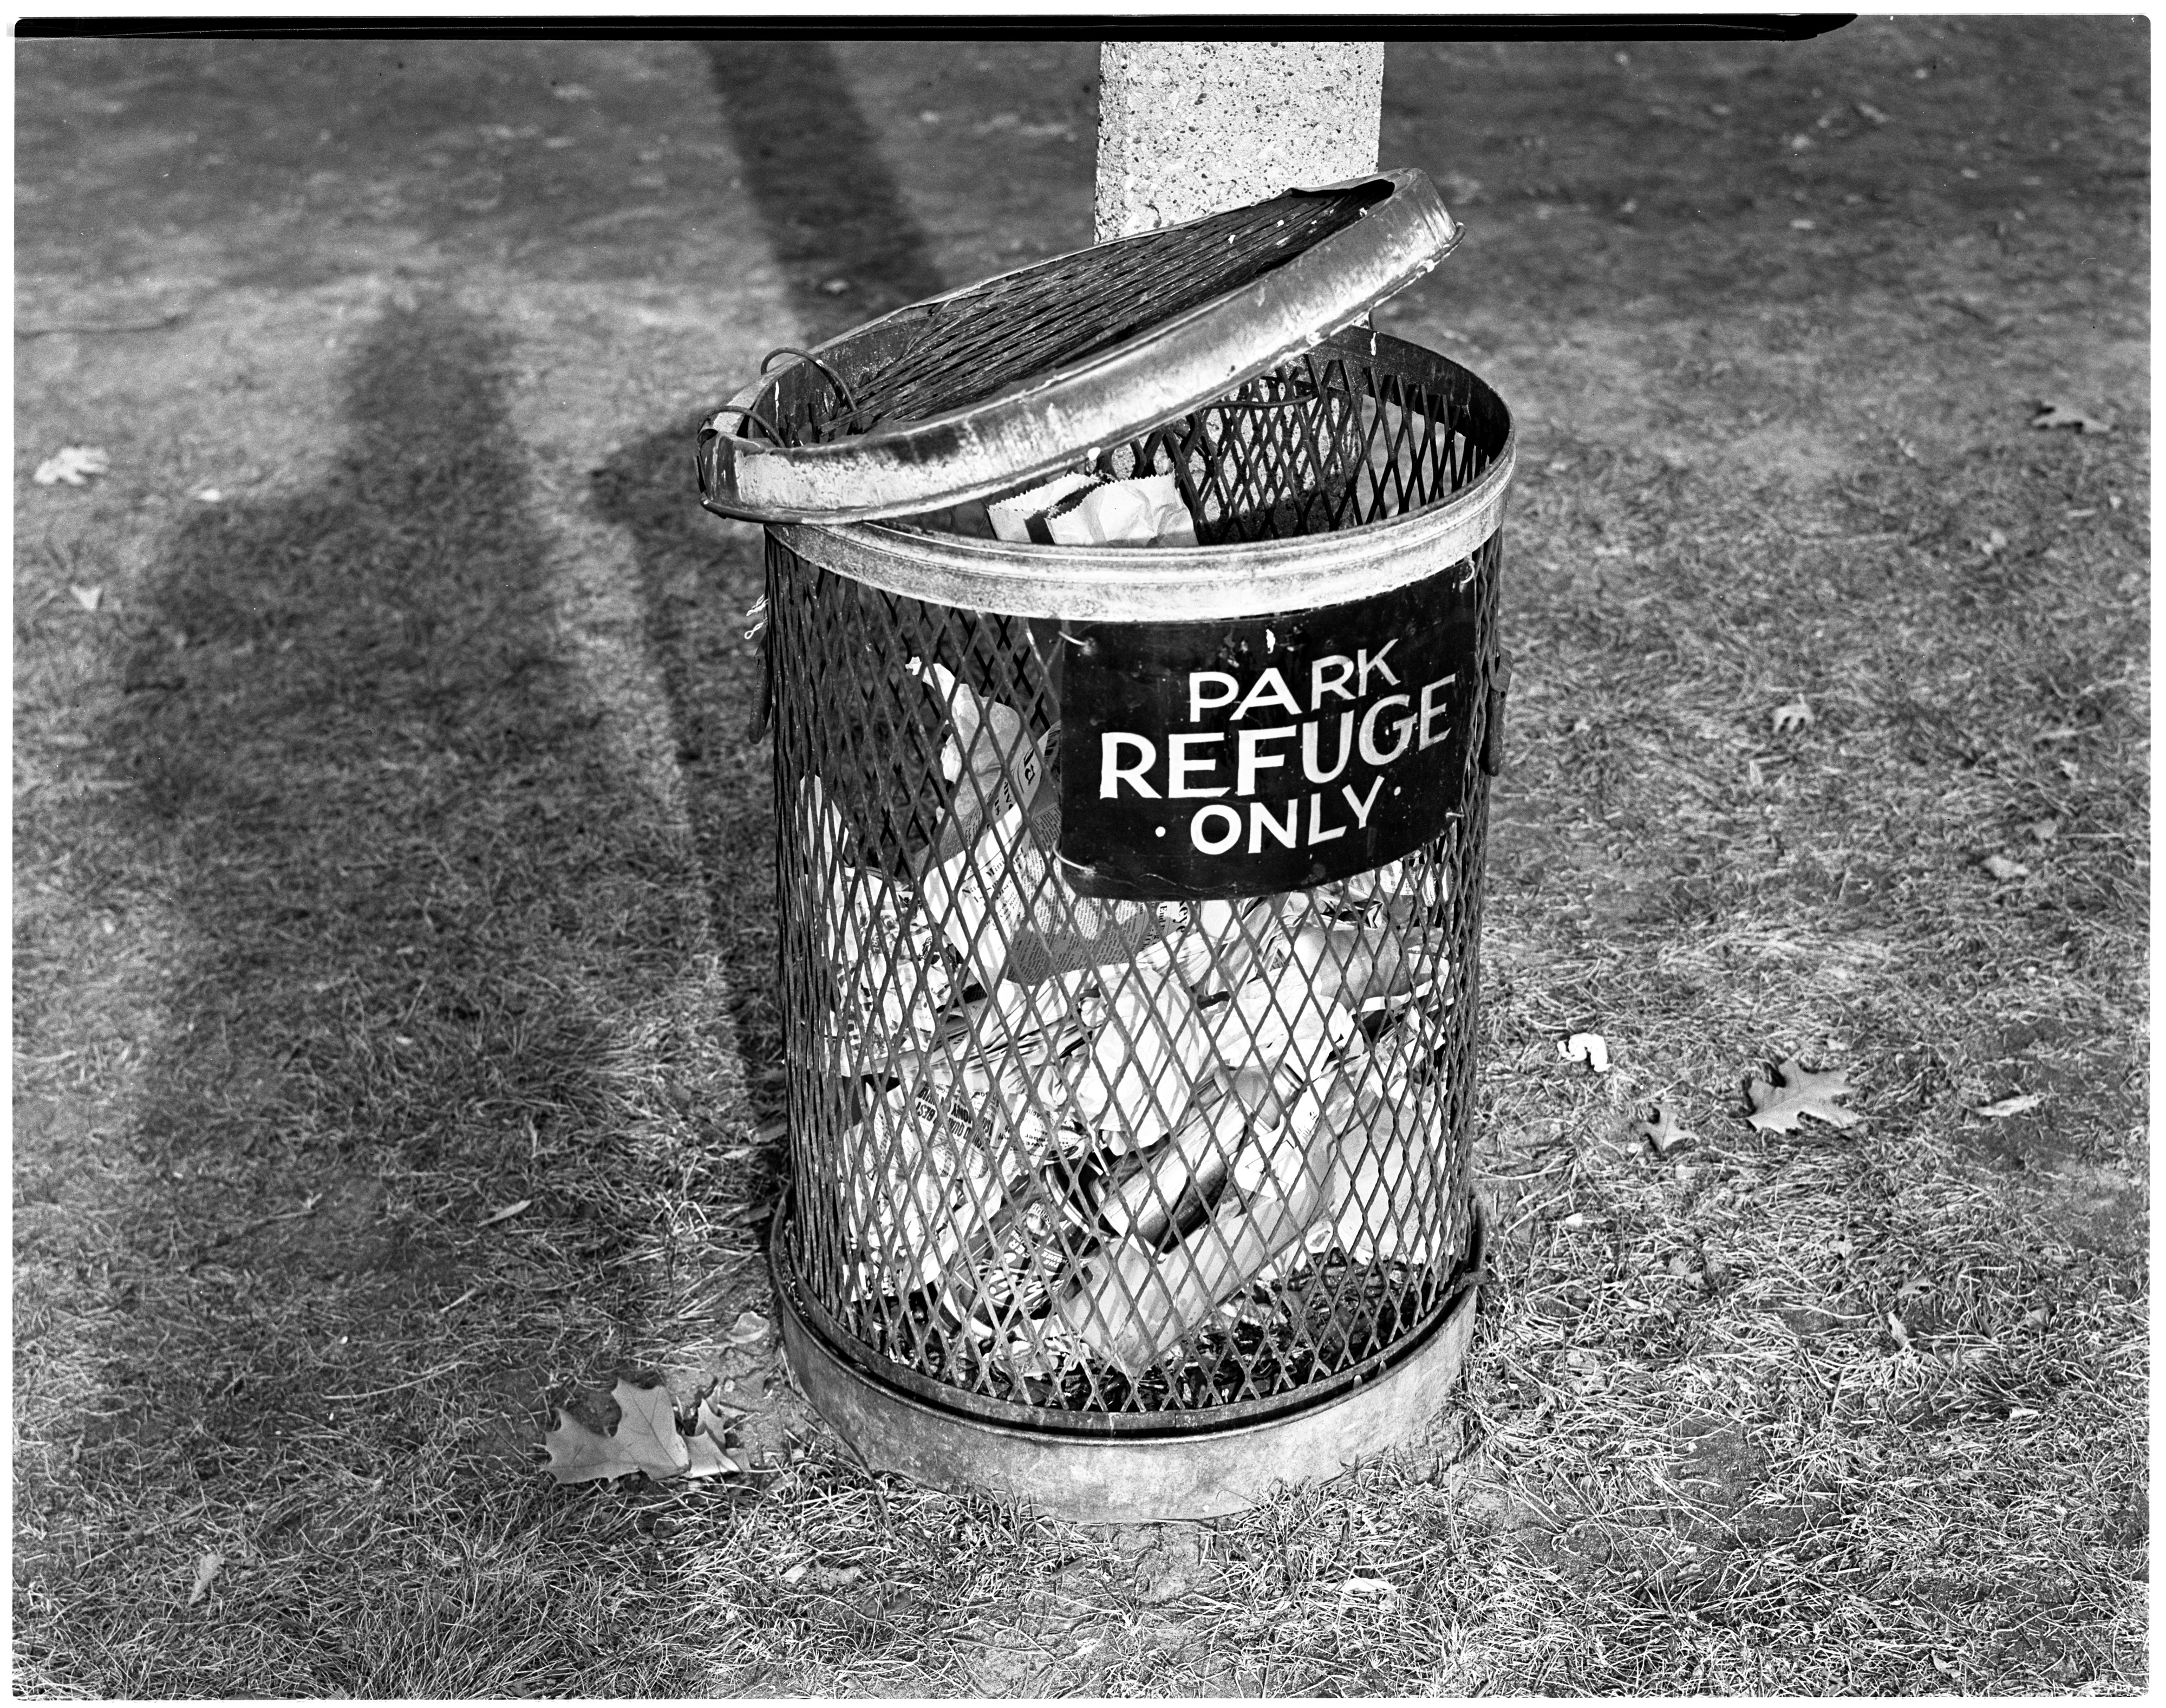 Misspelled Refuse Basket image